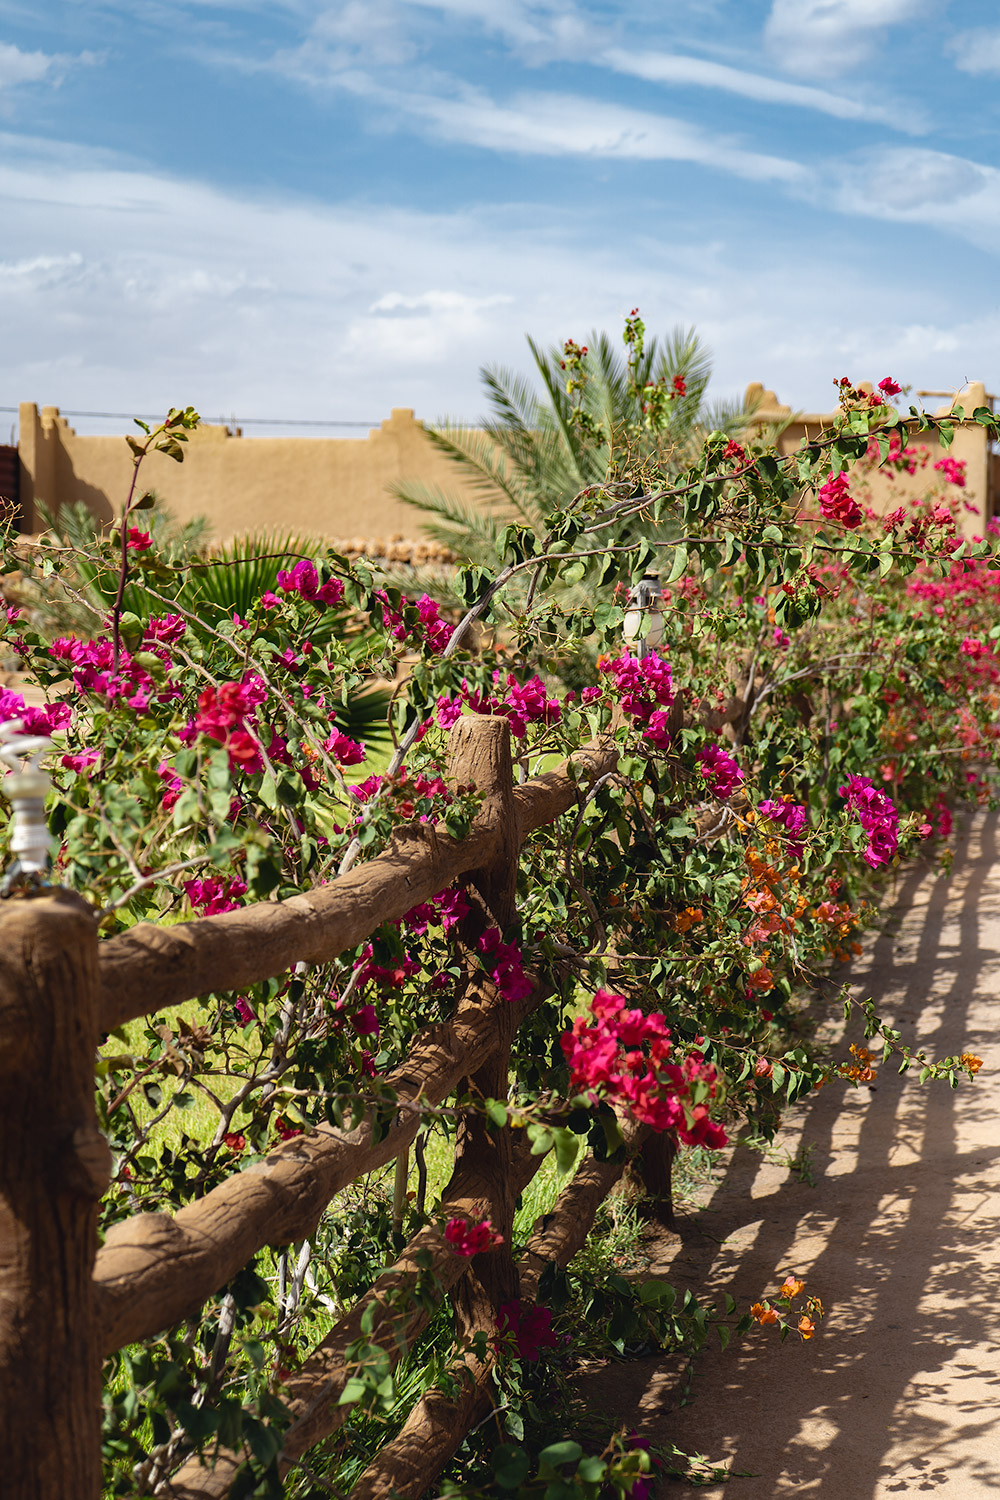 Pink flowers along the road to the desert in Morocco